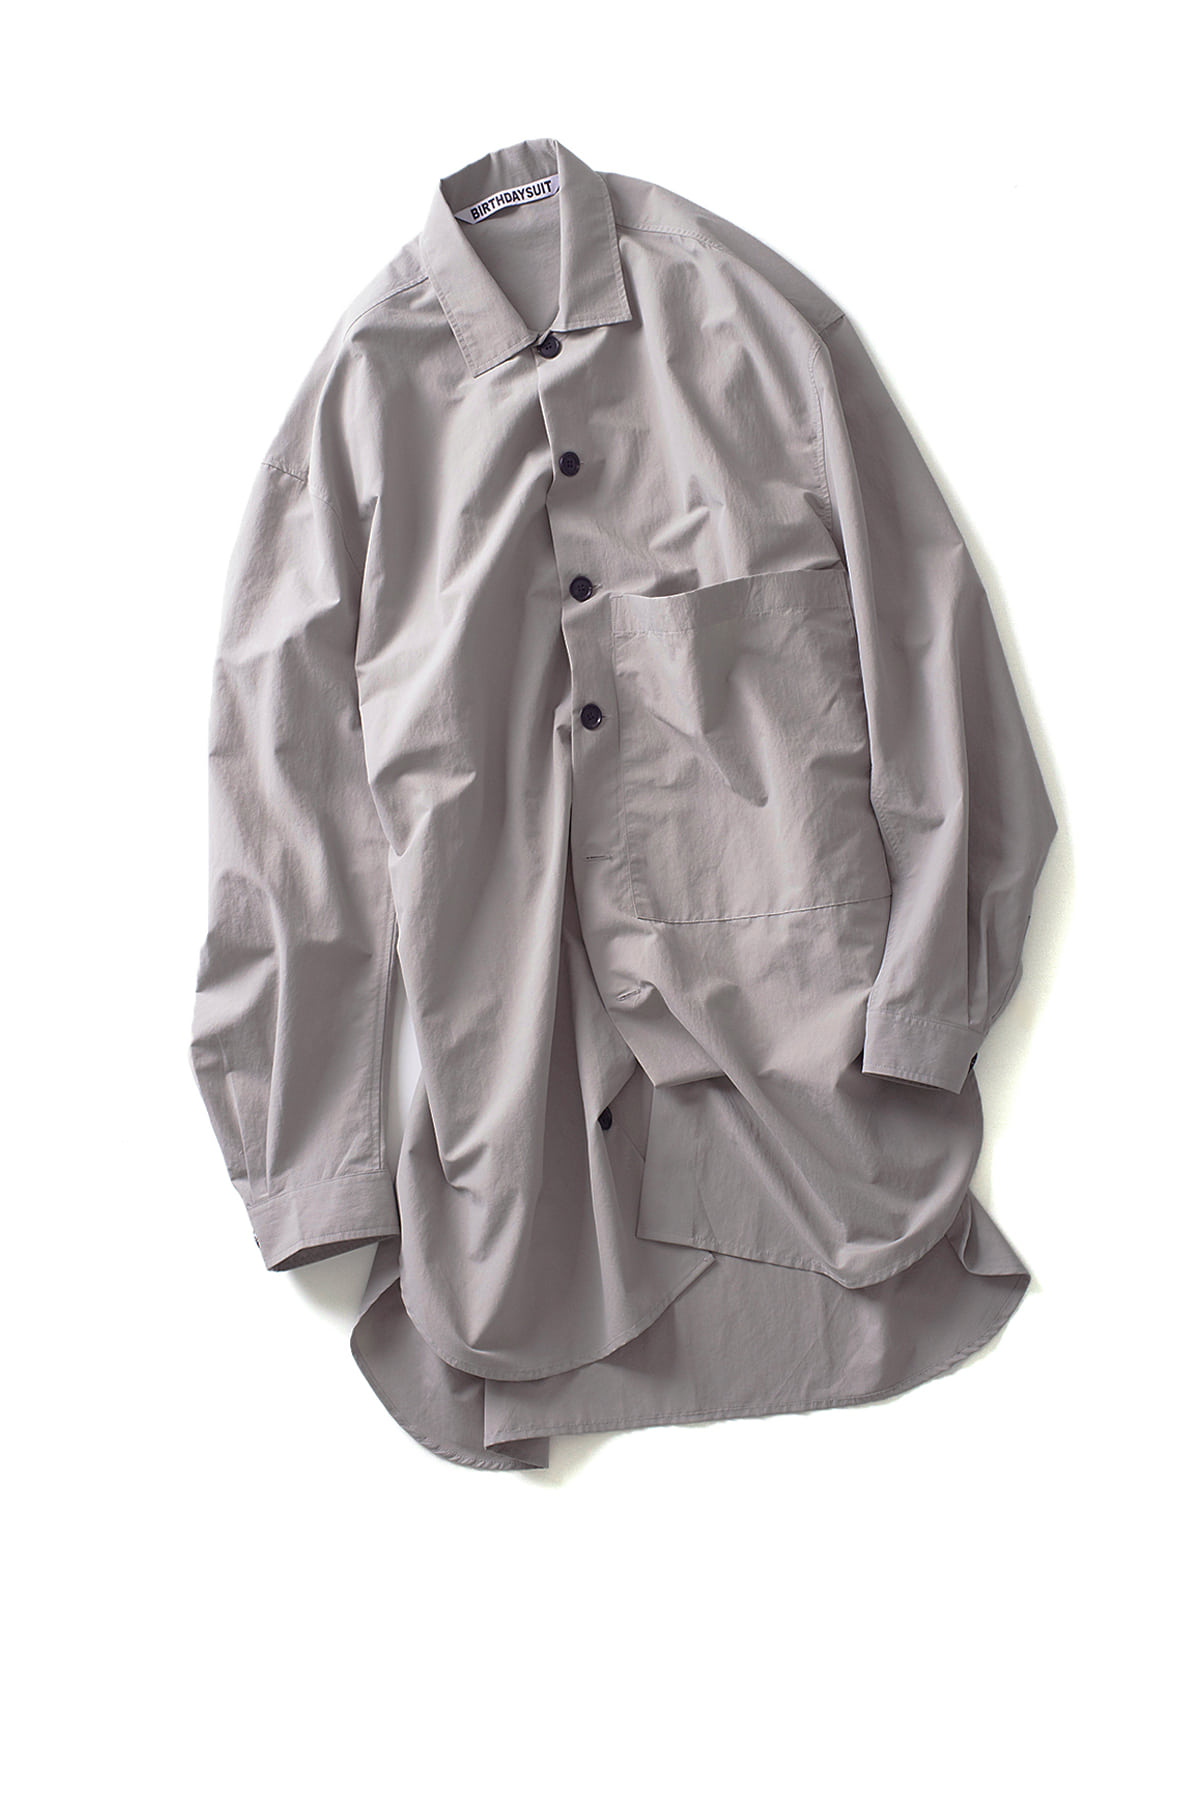 BIRTHDAYSUIT : Oversized Shirt Coat (Light Grey)